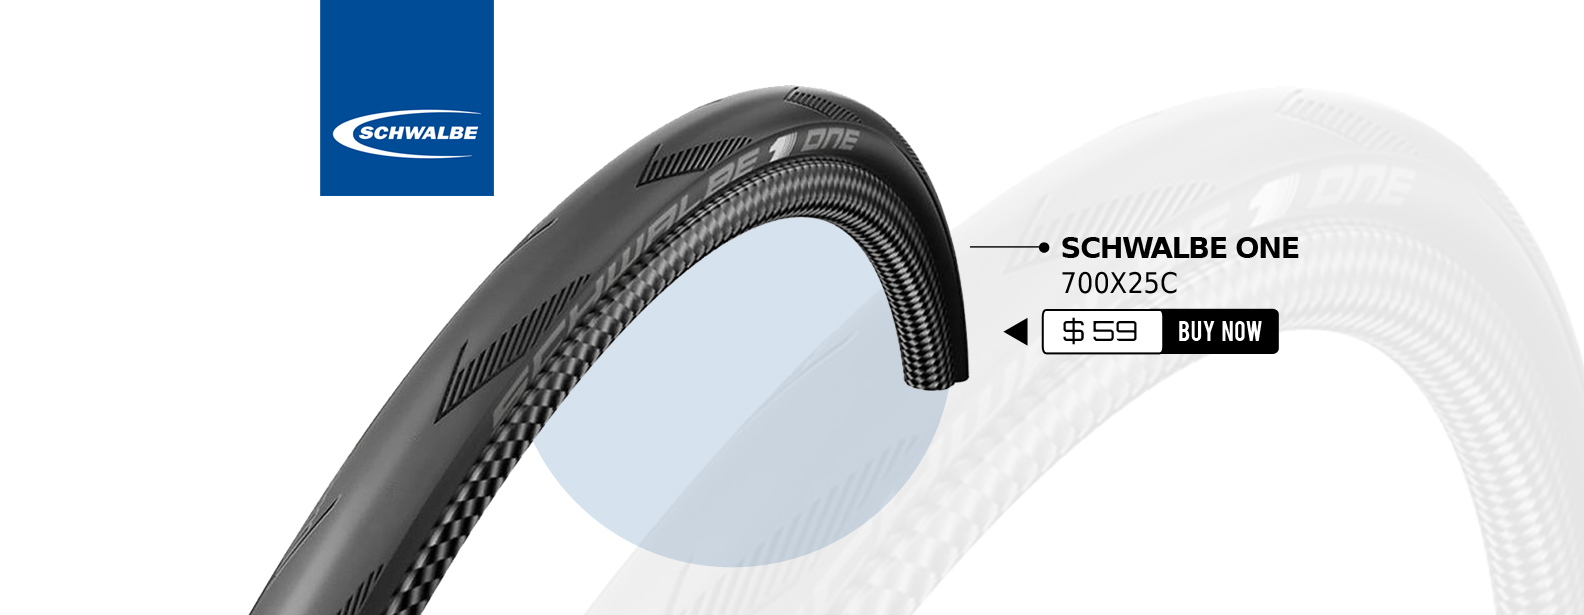 Schwalbe One 700x25C Tire